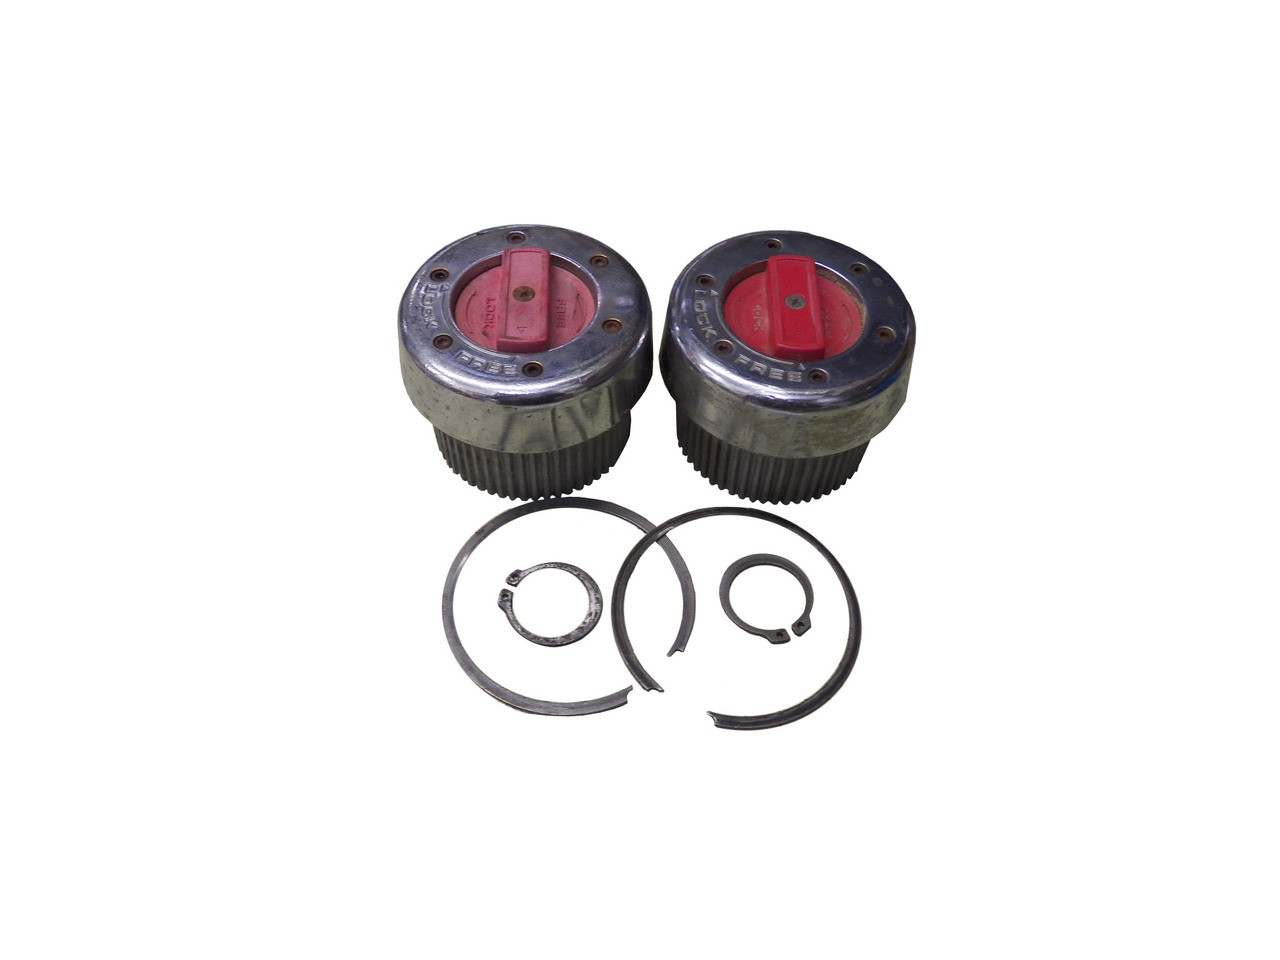 Used Warn Plastic Dial Manual Lockout Hub Set For Dana 50 60 Front Axles 300 Exploded View Diagram The Is Found In 19801986 Jeep Qu56011u Internal Splined Wheel Hubs